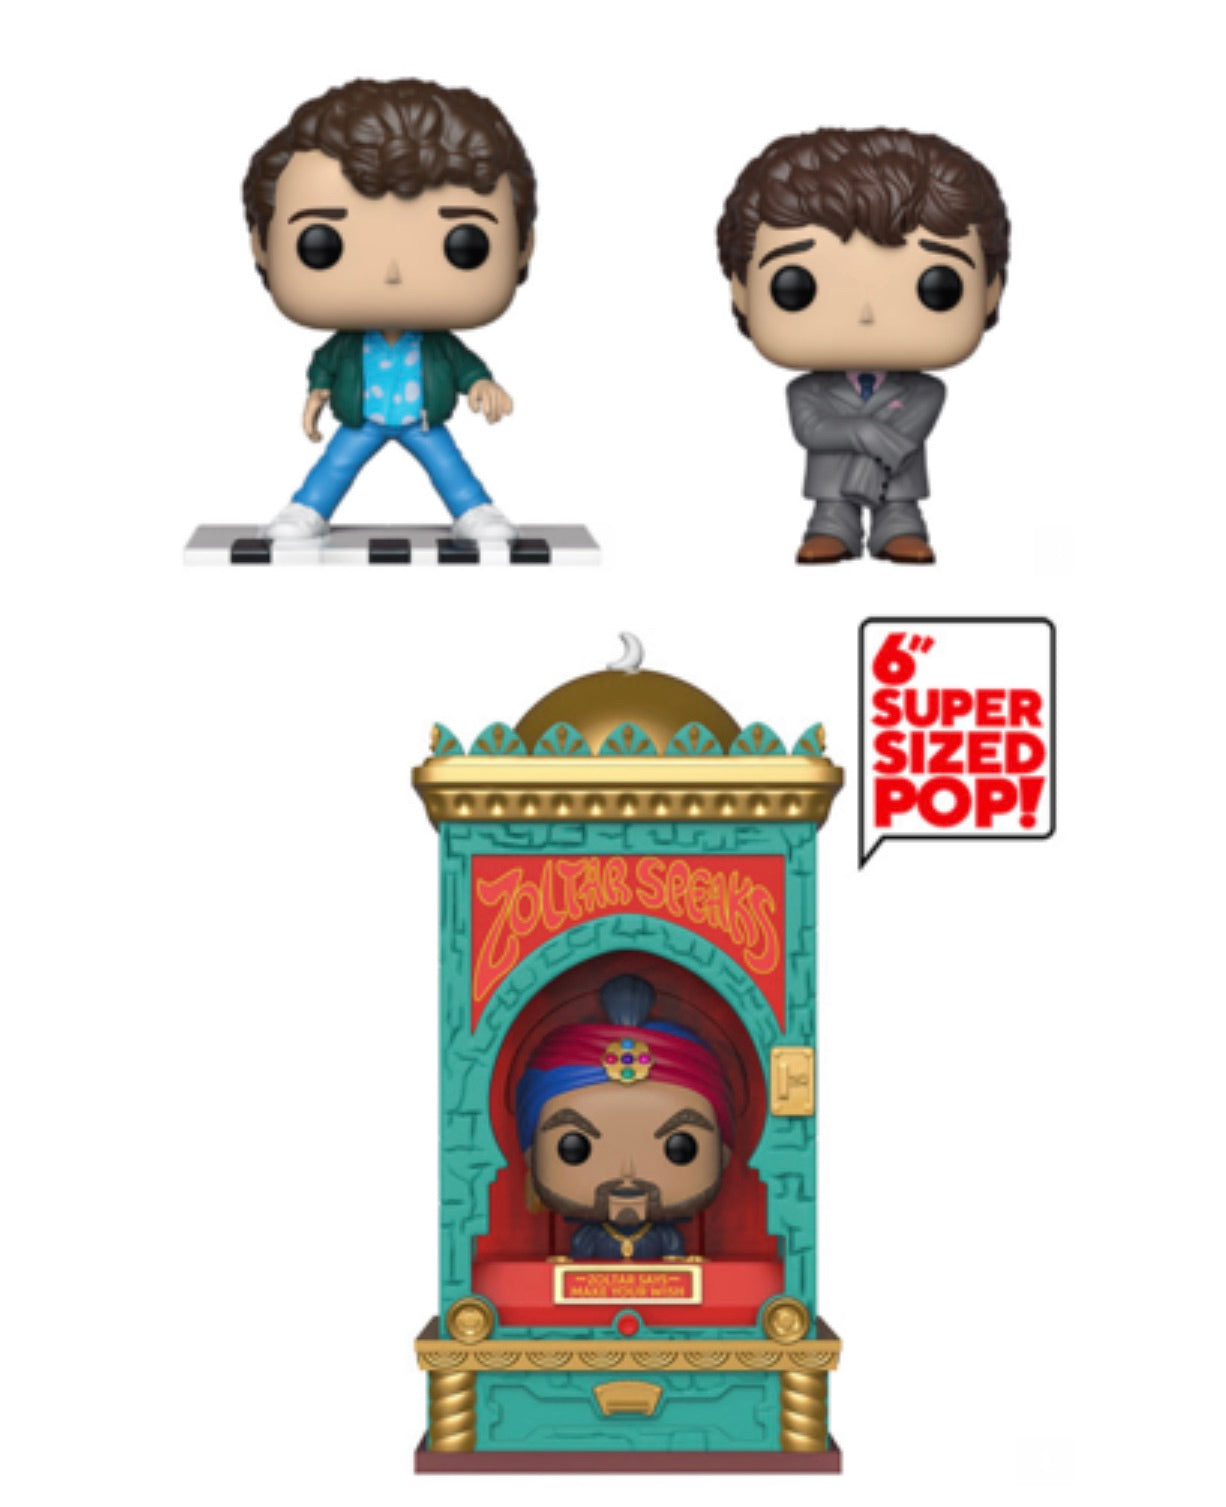 POP! MOVIES - BIG FUNKO POP! COMPLETE SET OF 3 (PRE-ORDER)